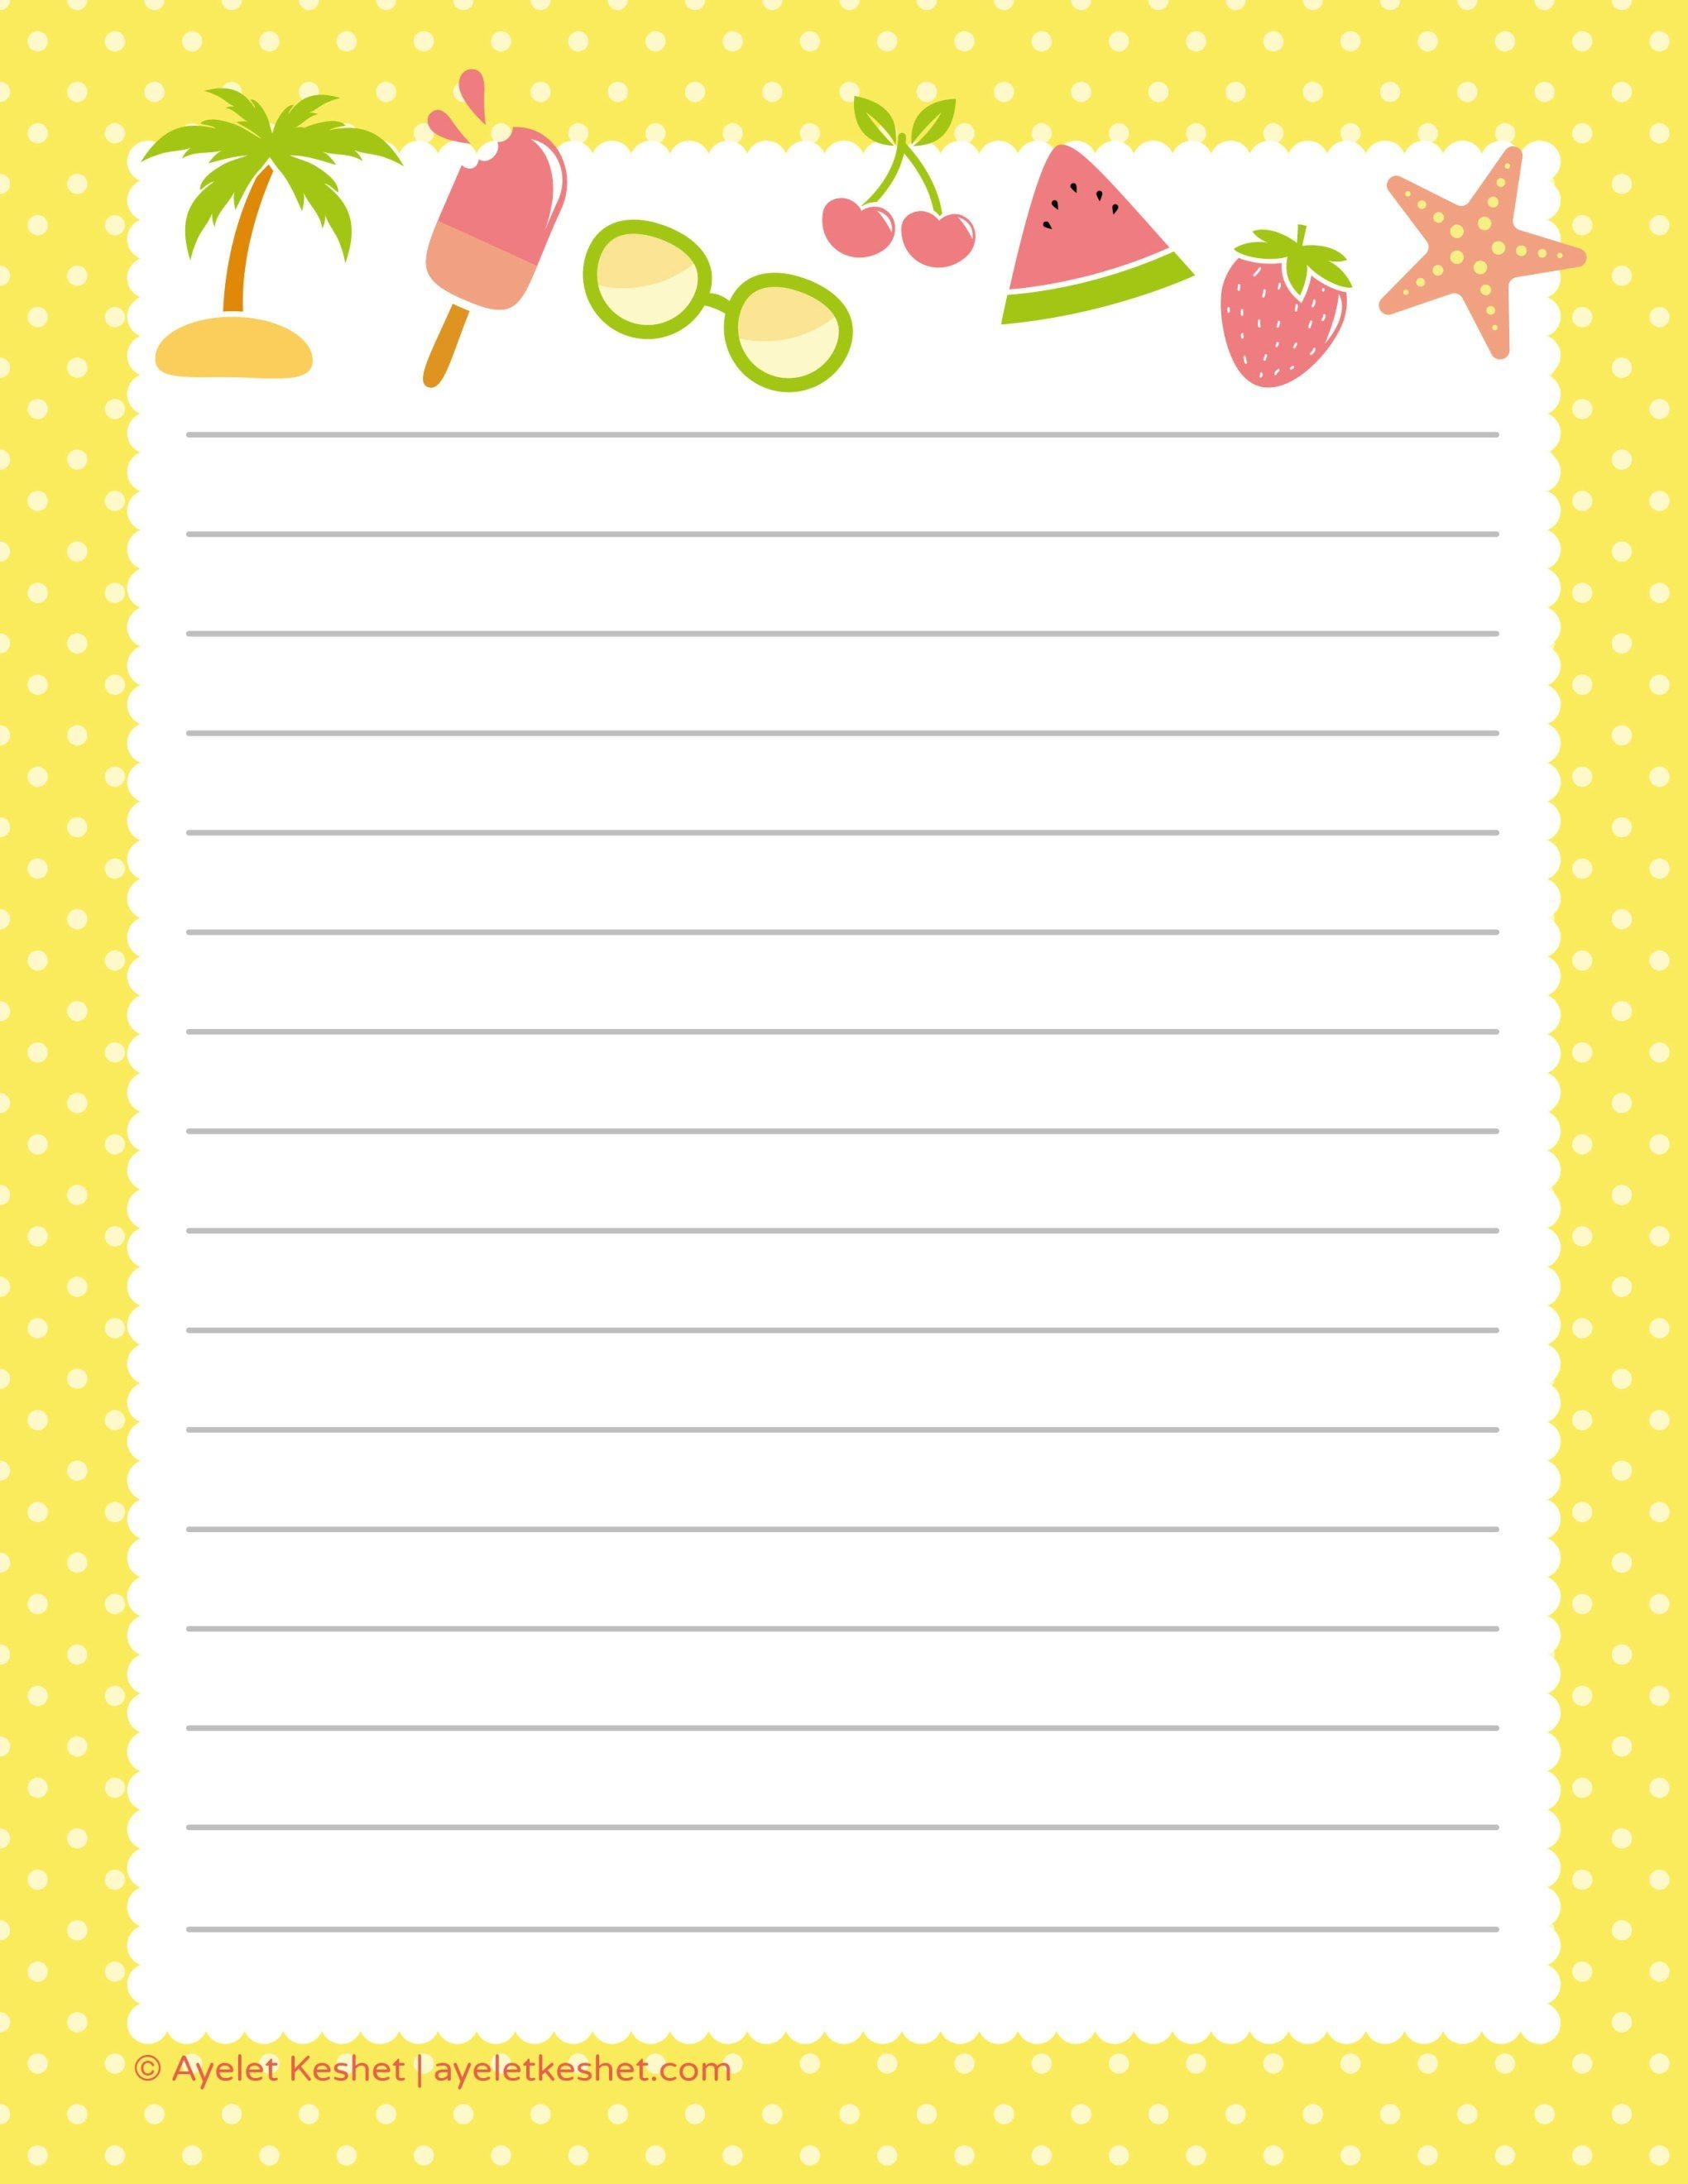 Free Printable Letter Paper   Printables To Go   Free Printable - Writing Borders Free Printable